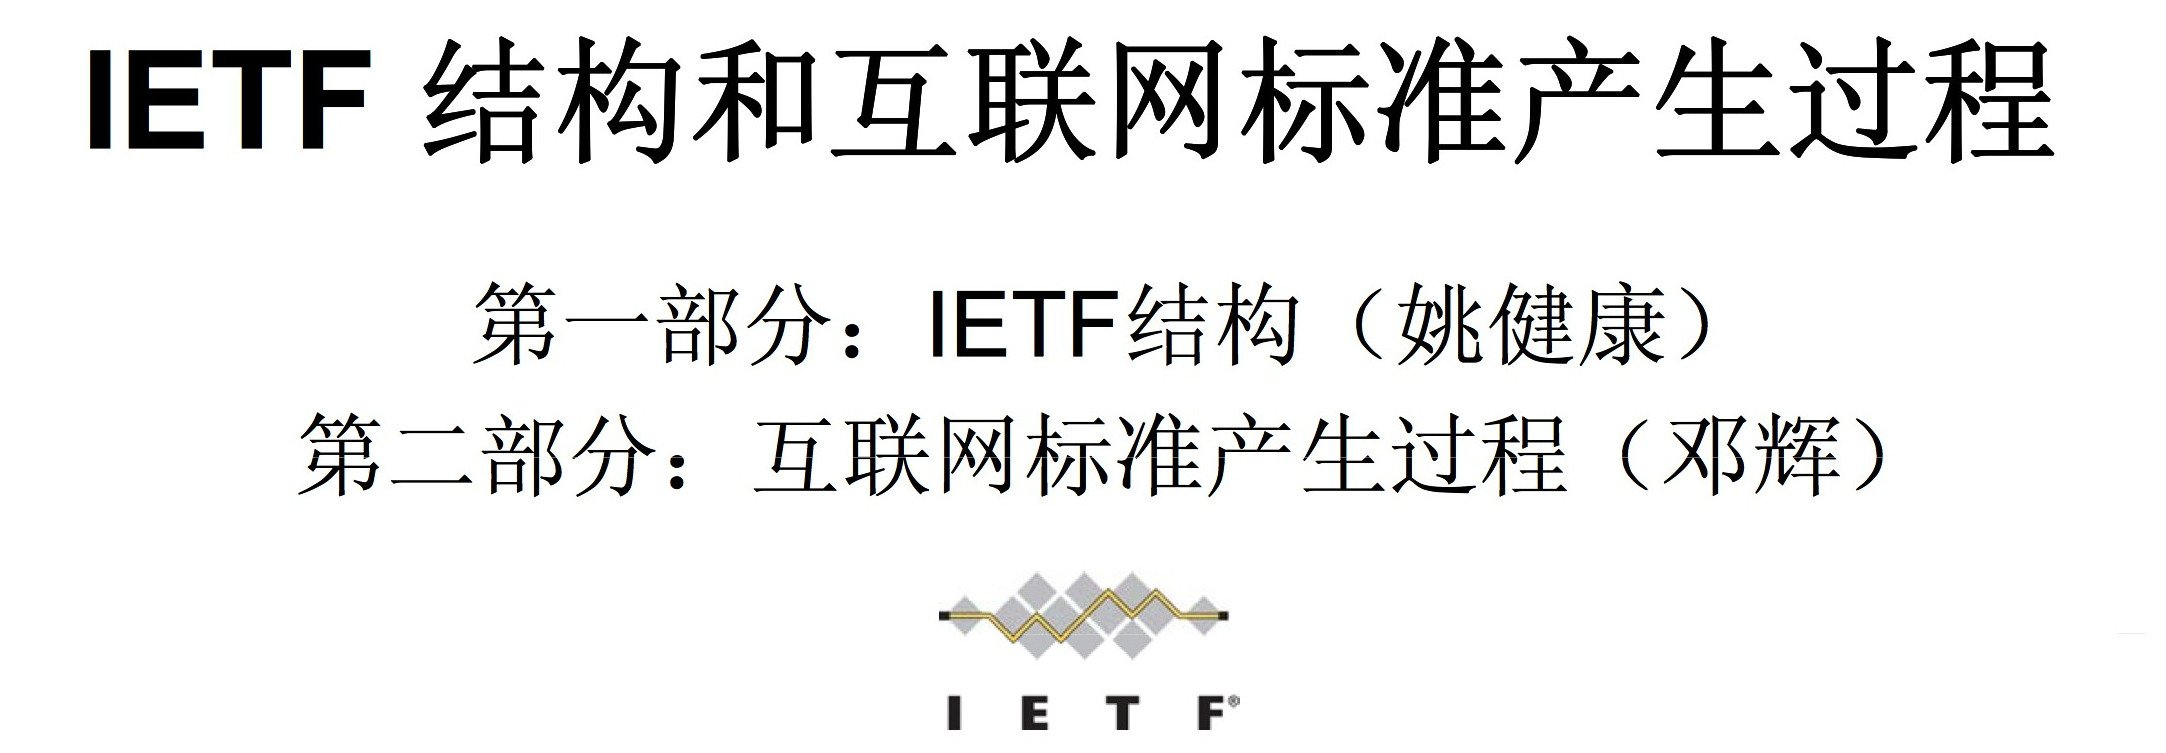 IETF in Chinese